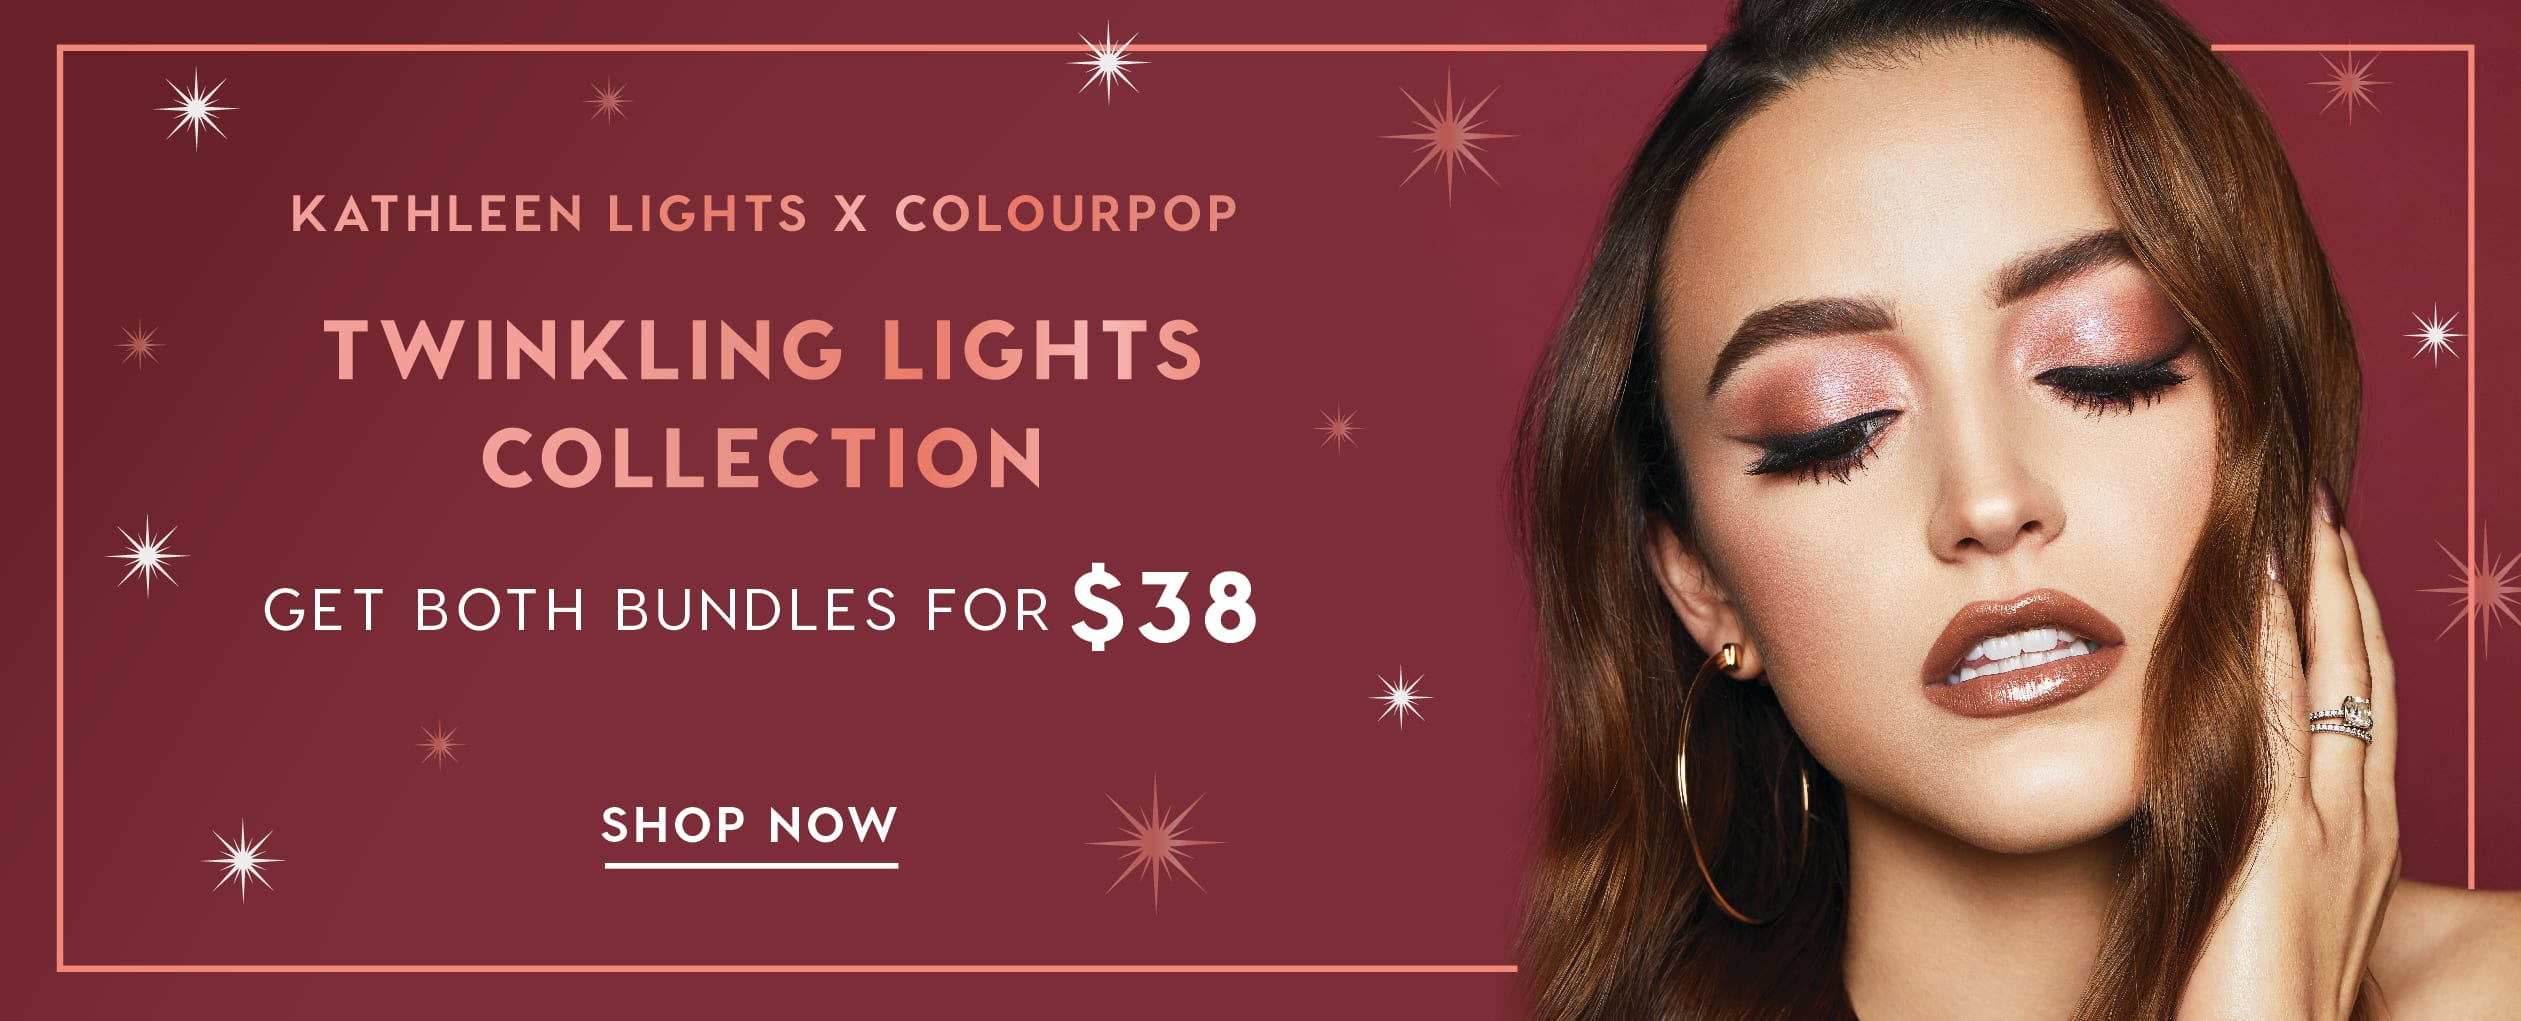 Kathleen Lights x Colourpop Twinkling Lights Collection